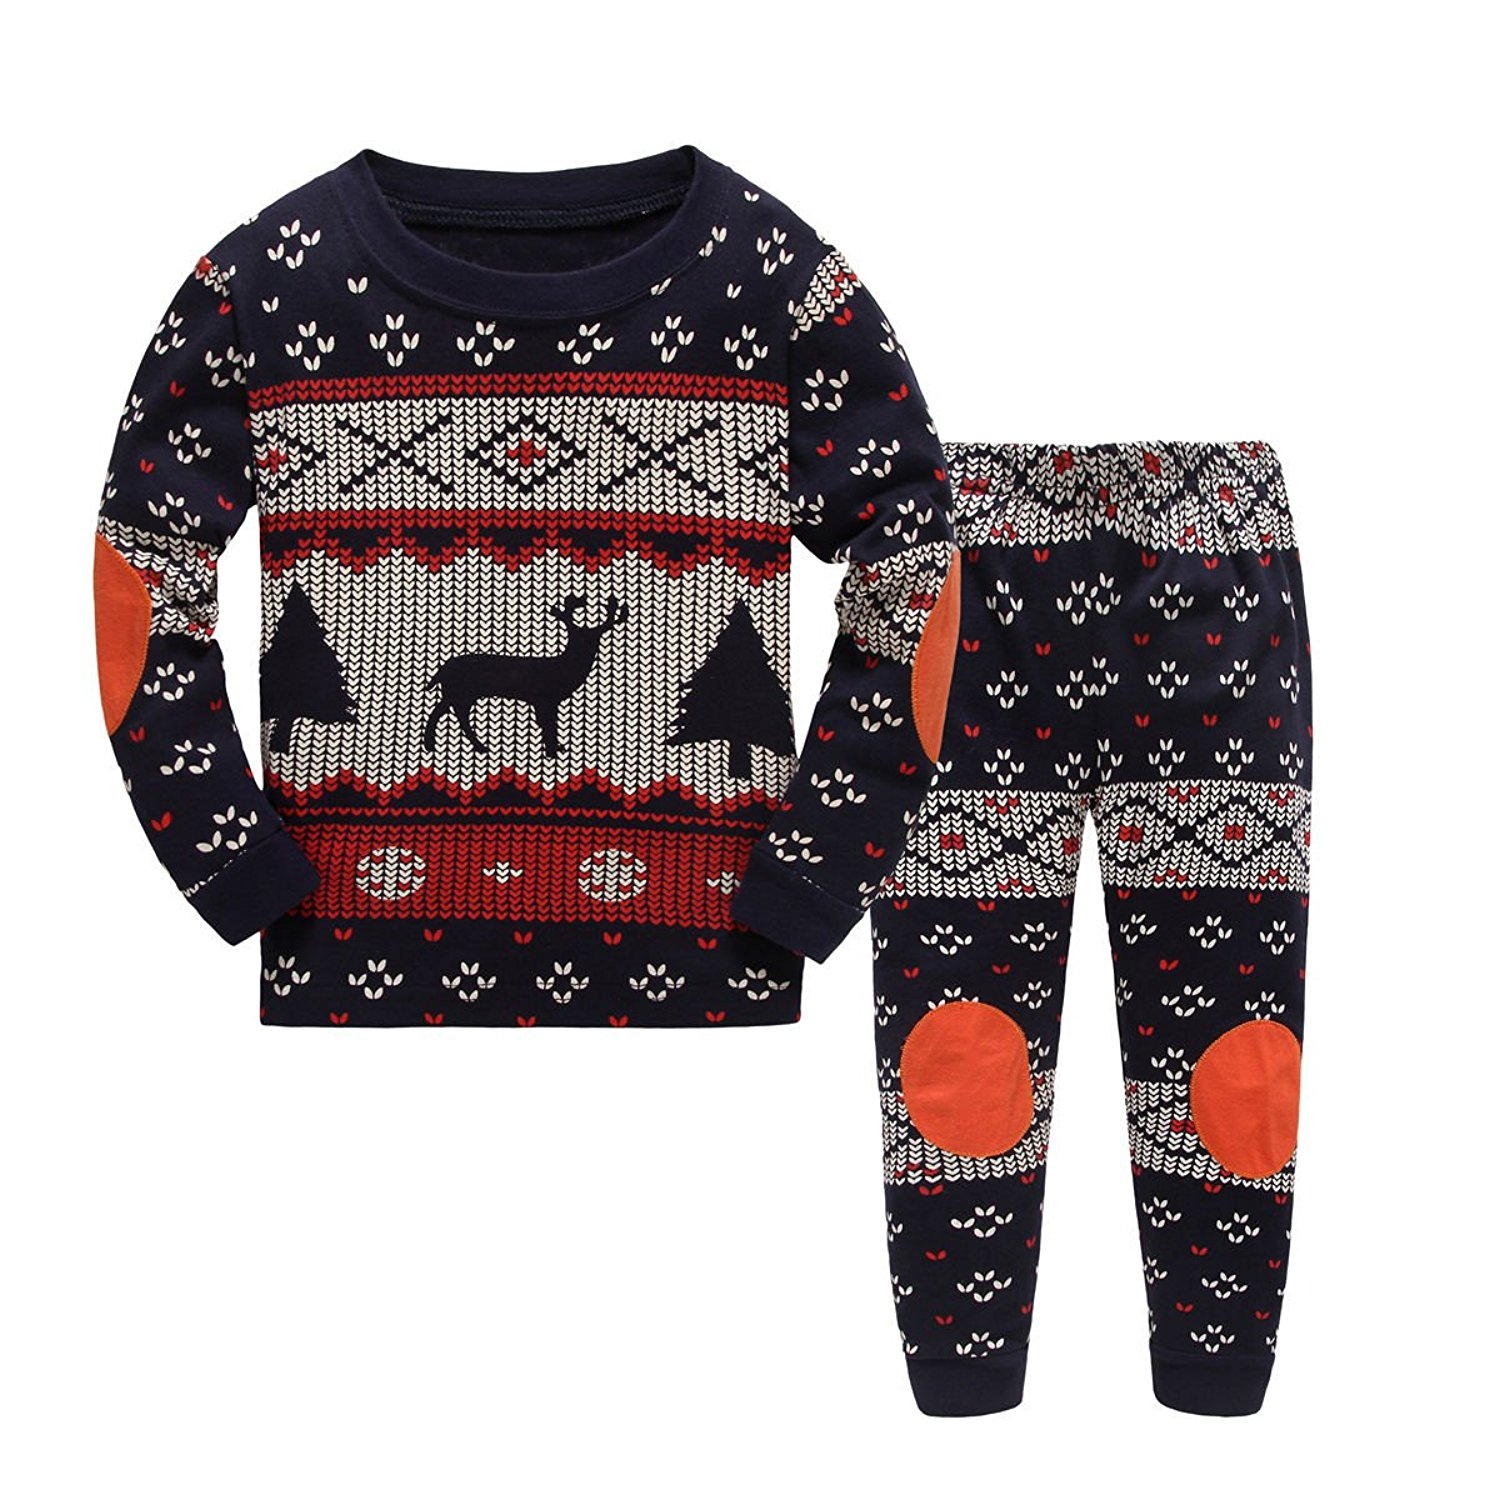 Canvos Baby Boys Christmas Deer Pajama Sets Little Kids Sleepwears Clothes